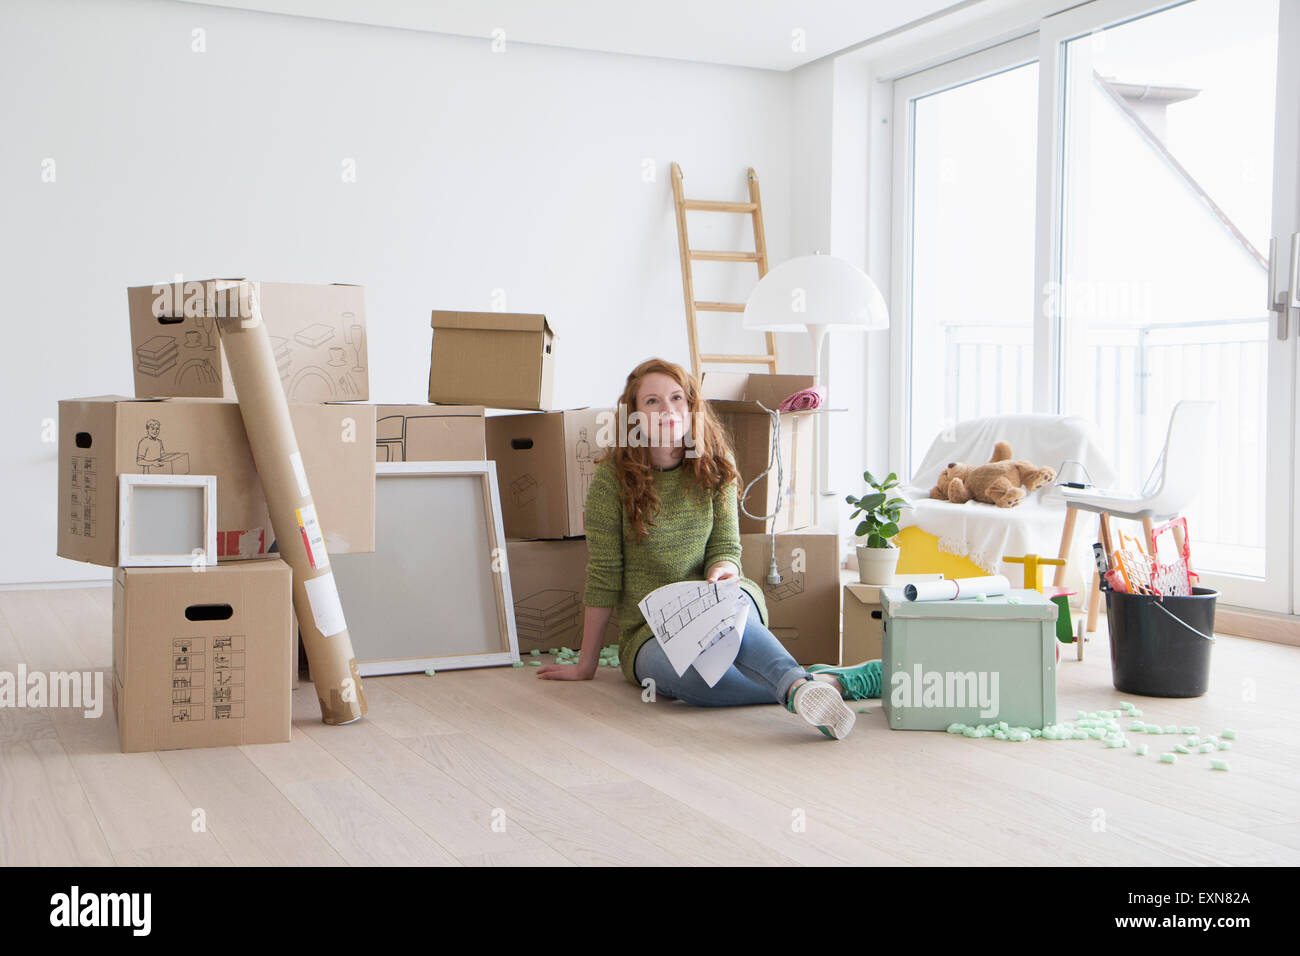 Young woman in new flat with cardboard boxes holding ground plan - Stock Image